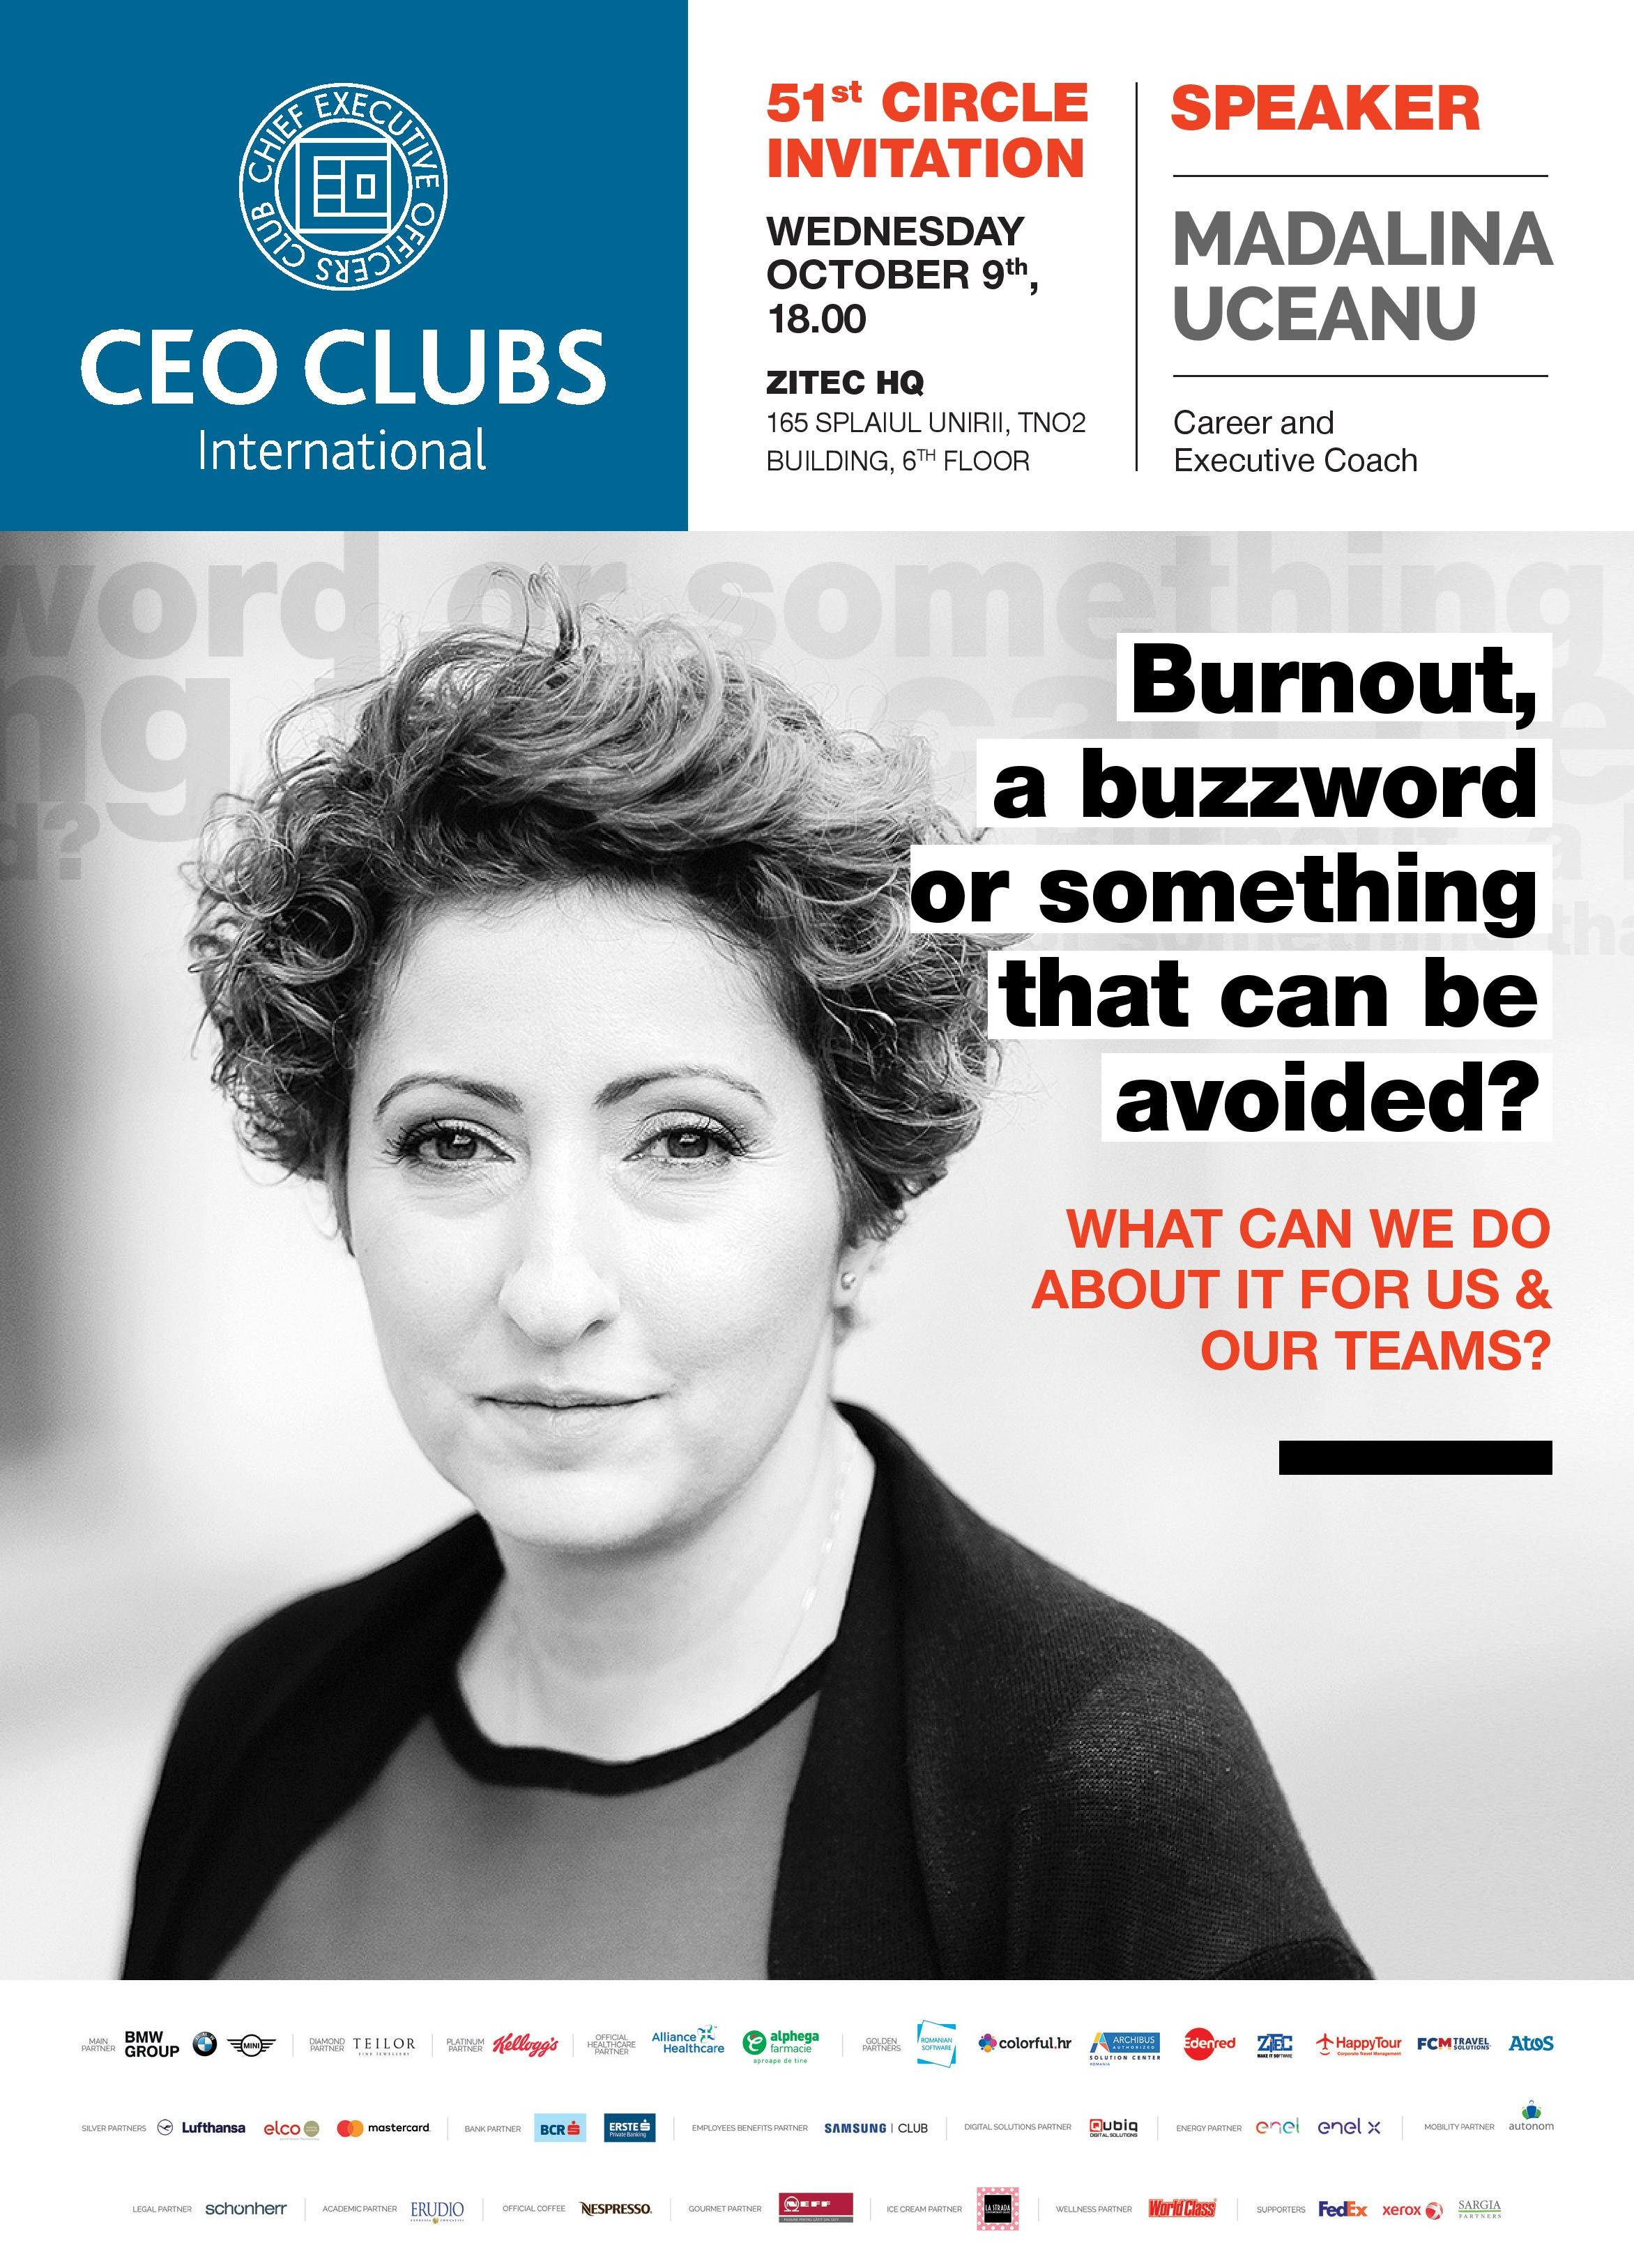 Circle: Burnout, a buzzword or something that can be avoided?